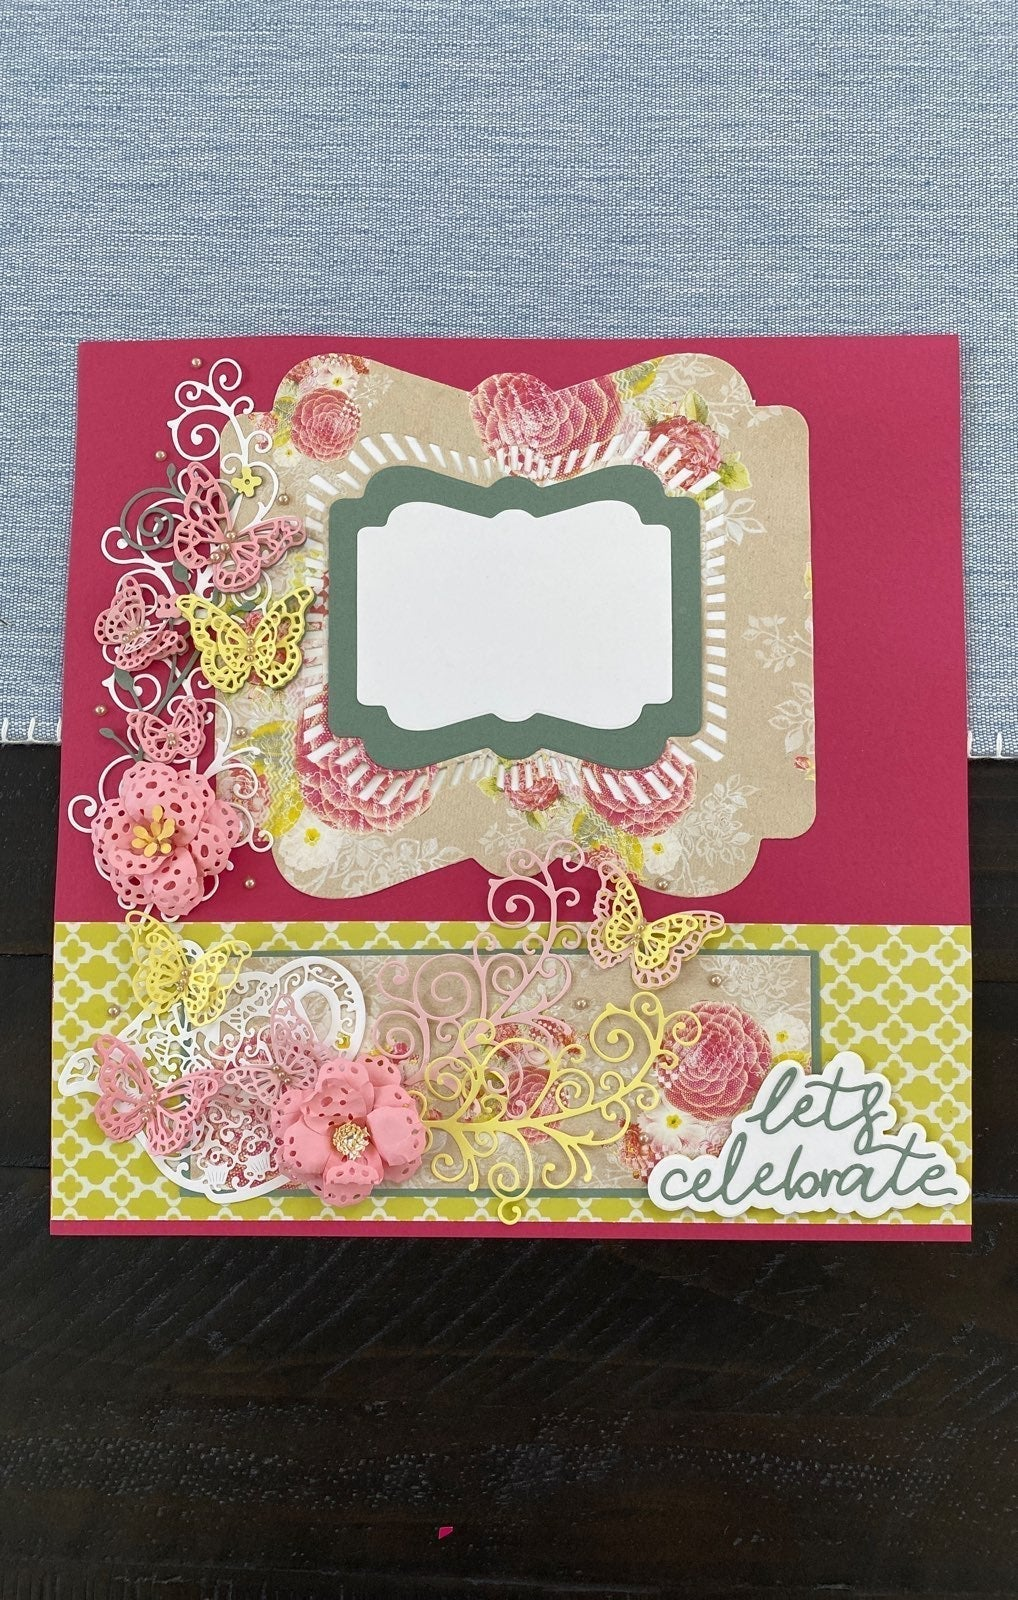 2 Intricate scrapbook page layouts